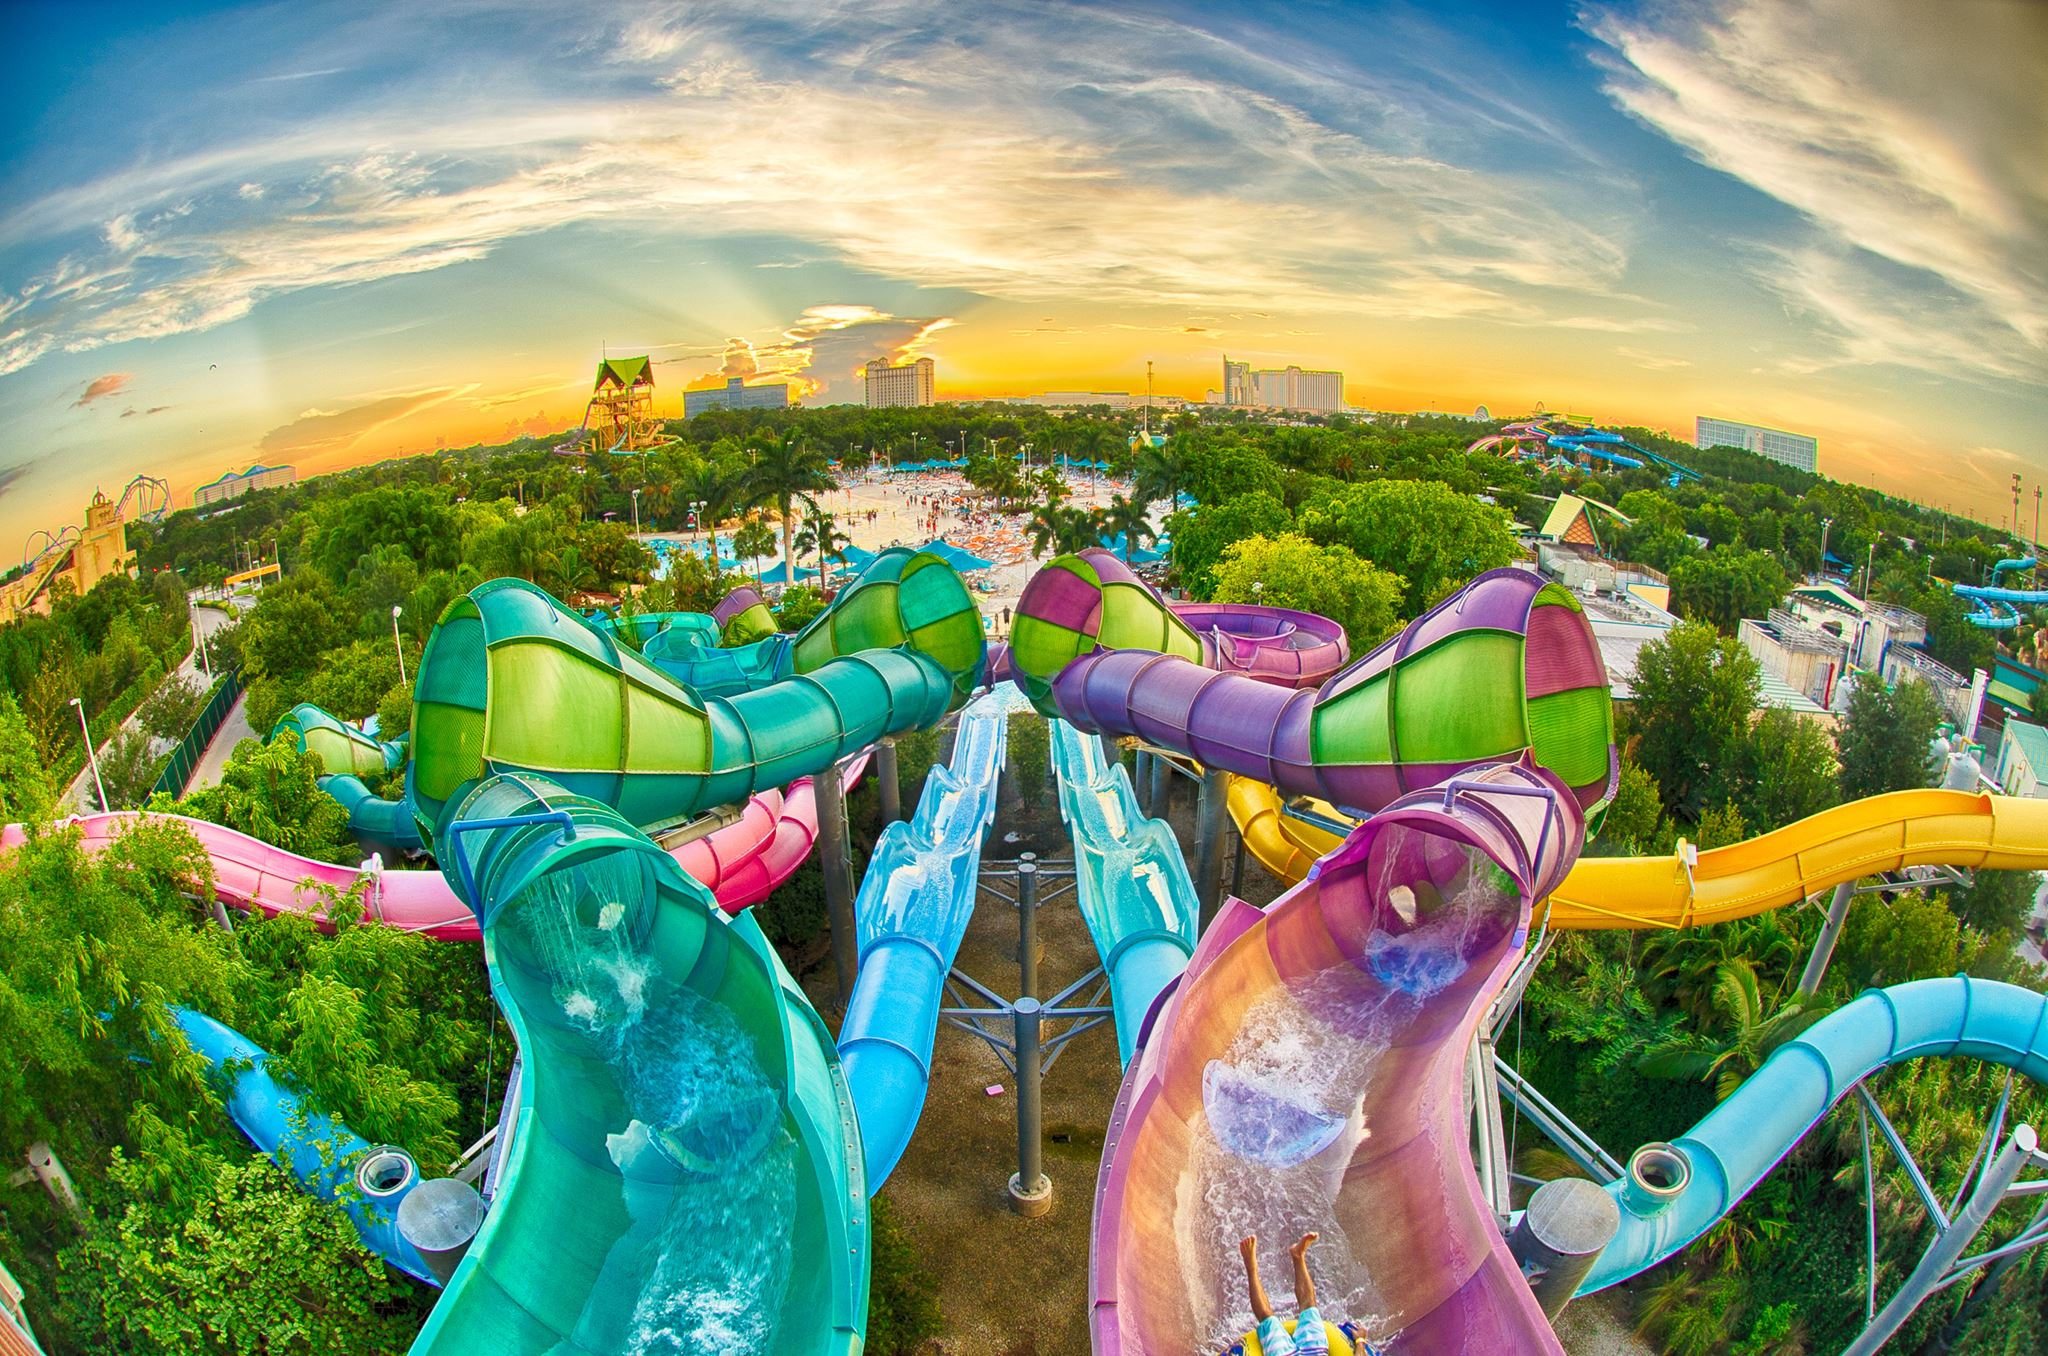 water parks in florida, best water parks in florida, top 10 water parks florida, tampa water park, biggest waterpark in florida, water parks in central florida, tampa bay water park, orlando water parks, water parks in orlando florida, best waterpark in orlando, new water park orlando, water parks near orlando, water parks near orlando fl, best water parks in orlando florida, top water parks orlando, water slides orlando, water theme parks in orlando, water parks in orlando area, new water park in florida, all water parks in orlando florida, cheap water parks in orlando, disney water parks orlando, orlando water, new water park in orlando fl, water parks in kissimmee florida, new disney water park, water park, legoland water park, legoland water park florida, legoland florida water park, legoland park florida, legoland florida hours, legoland park, legoland water park orlando, legoland waterpark florida